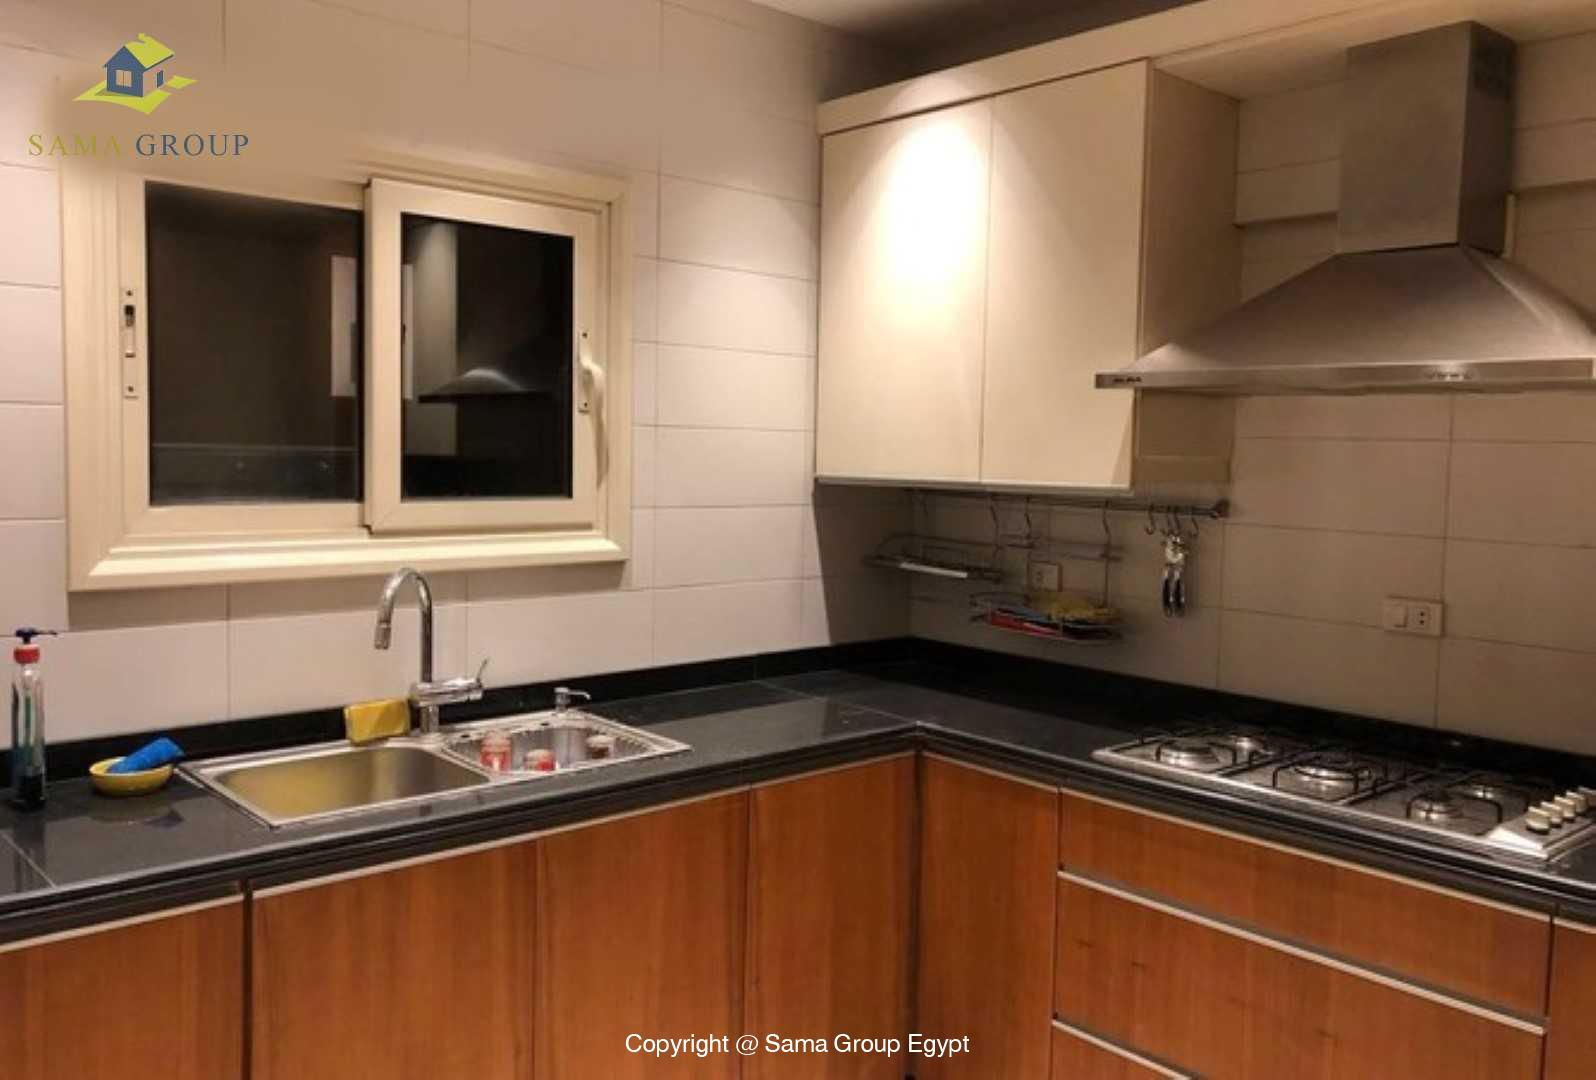 Apartment For Rent In Zamalek,Modern Furnished,Apartment NO #9